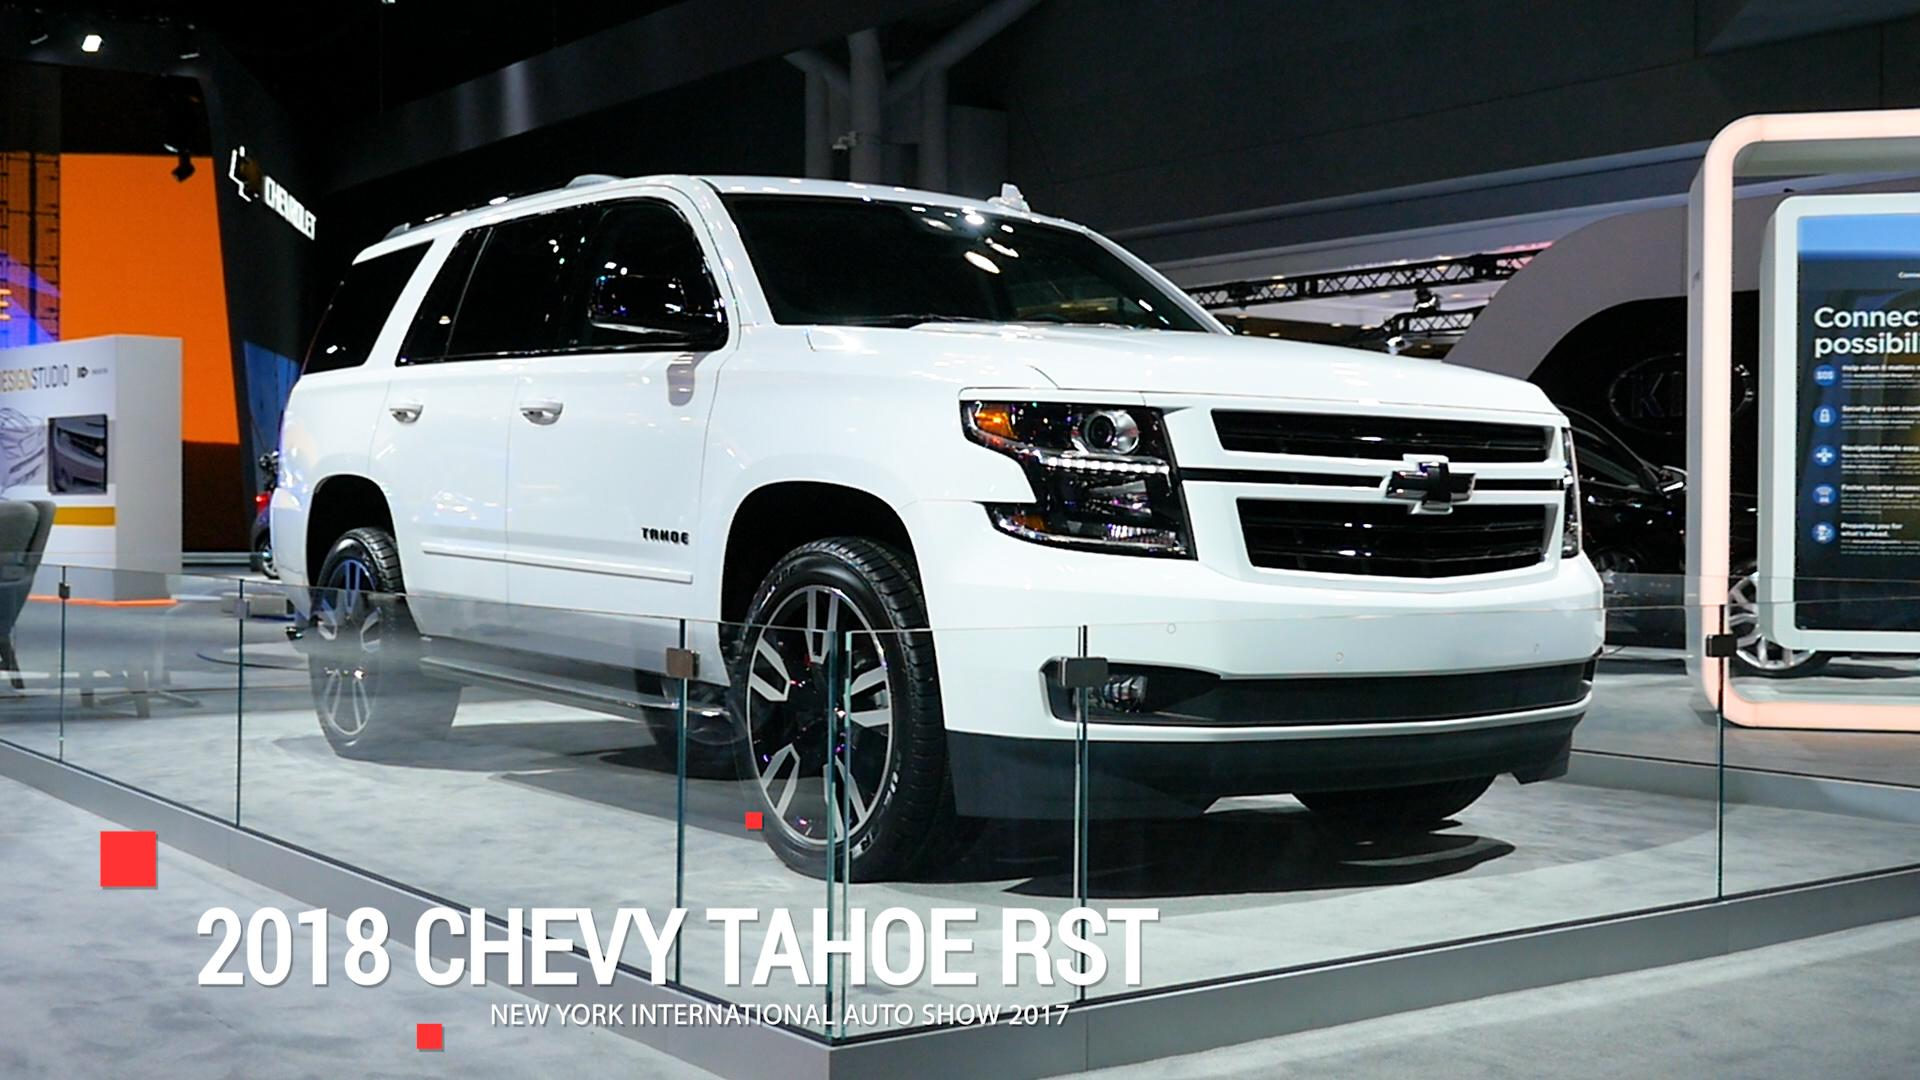 2018 Chevy Tahoe Rst Gets A 420 Horsepower 6 2 Liter V8 Option